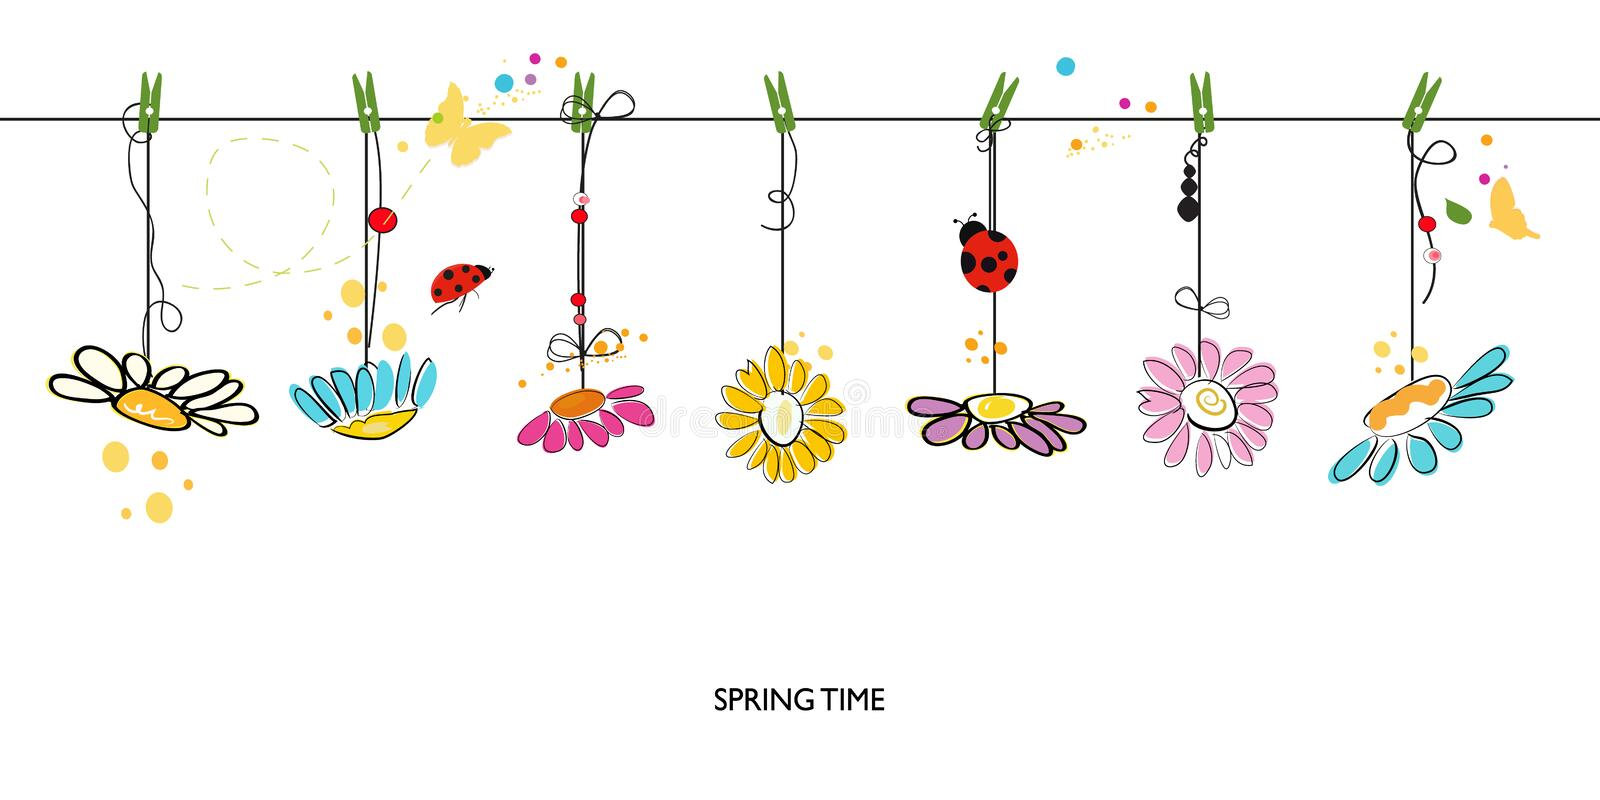 Spring Time Decorative Floral Abstract Border Background ...